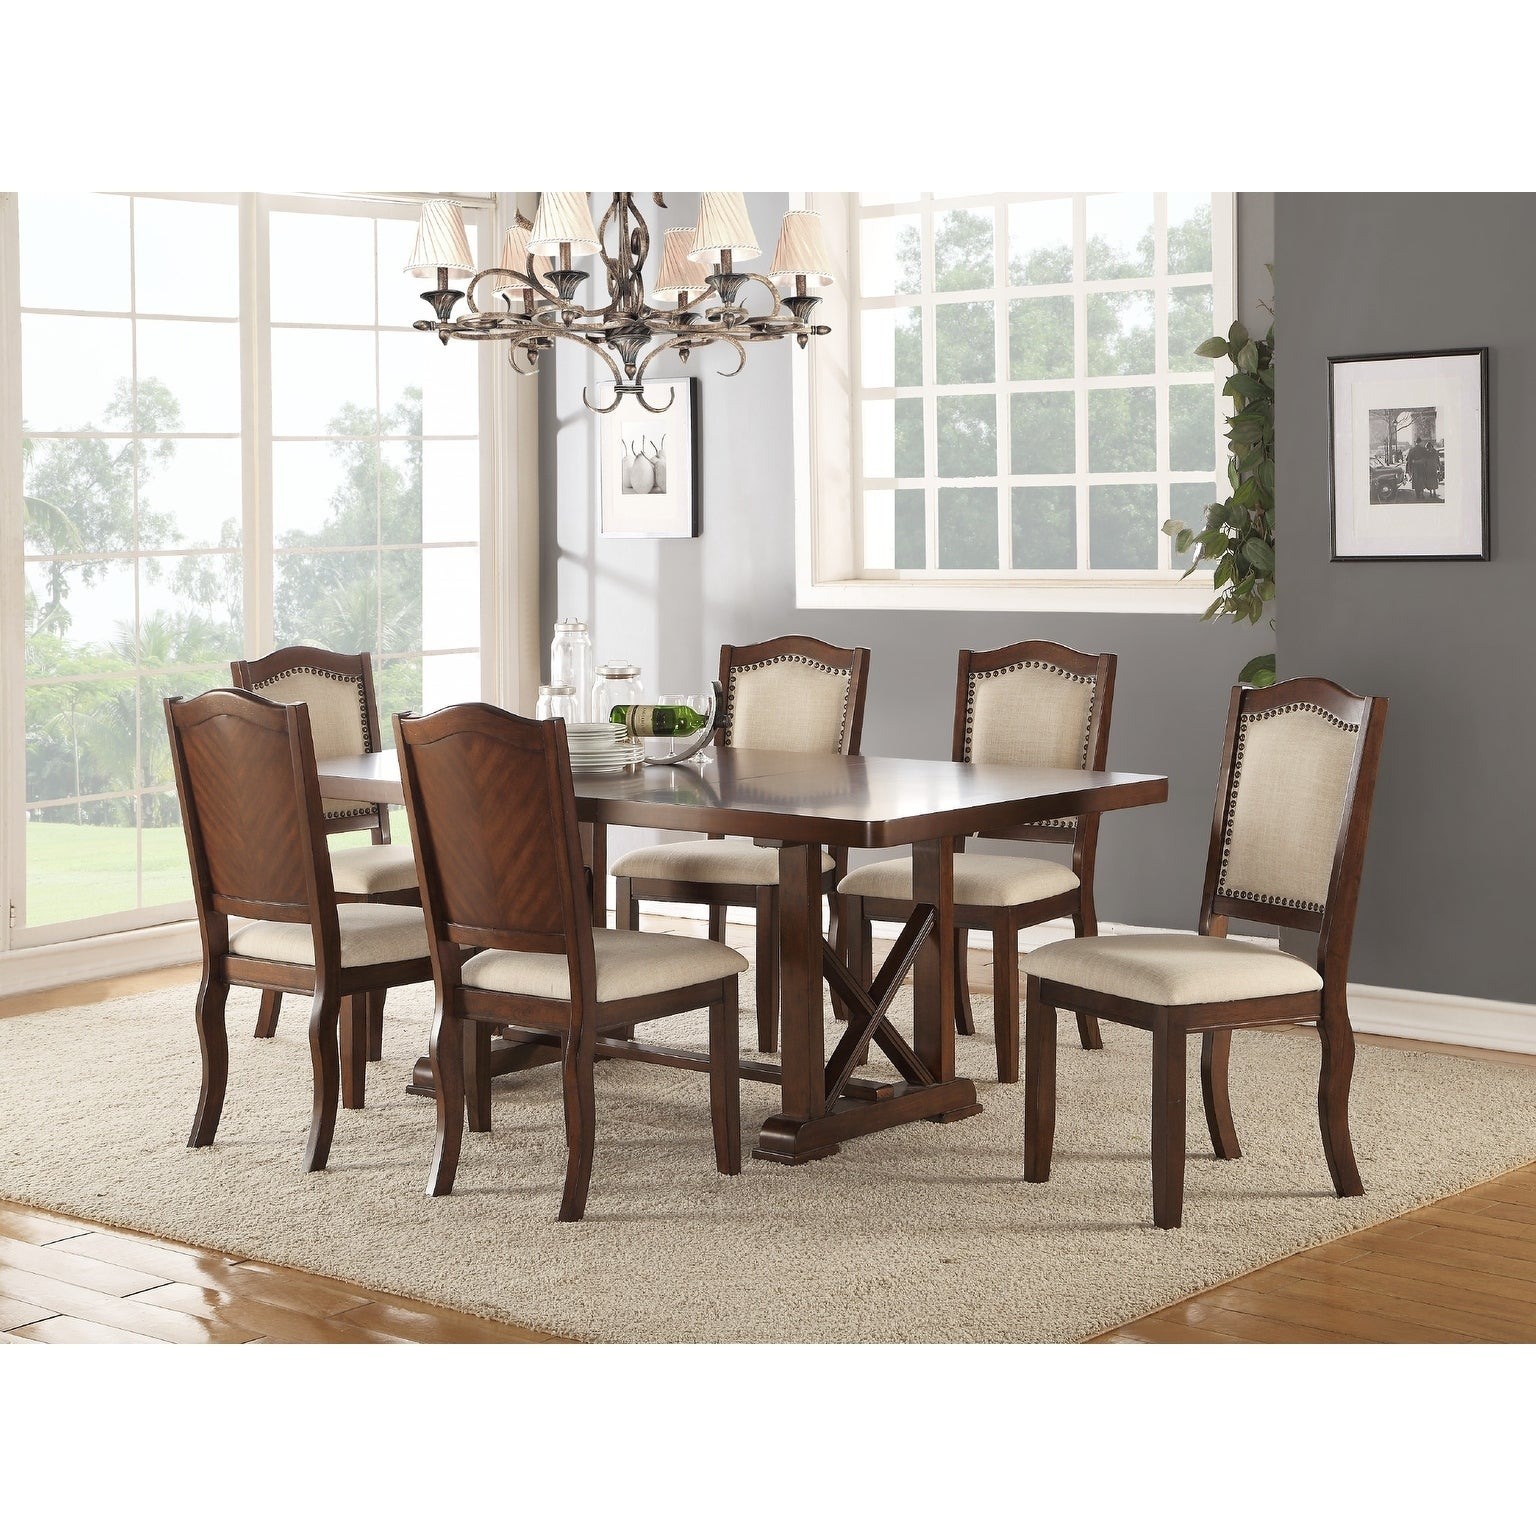 Chevaliers 7 Piece Dining Set Overstock 27078692